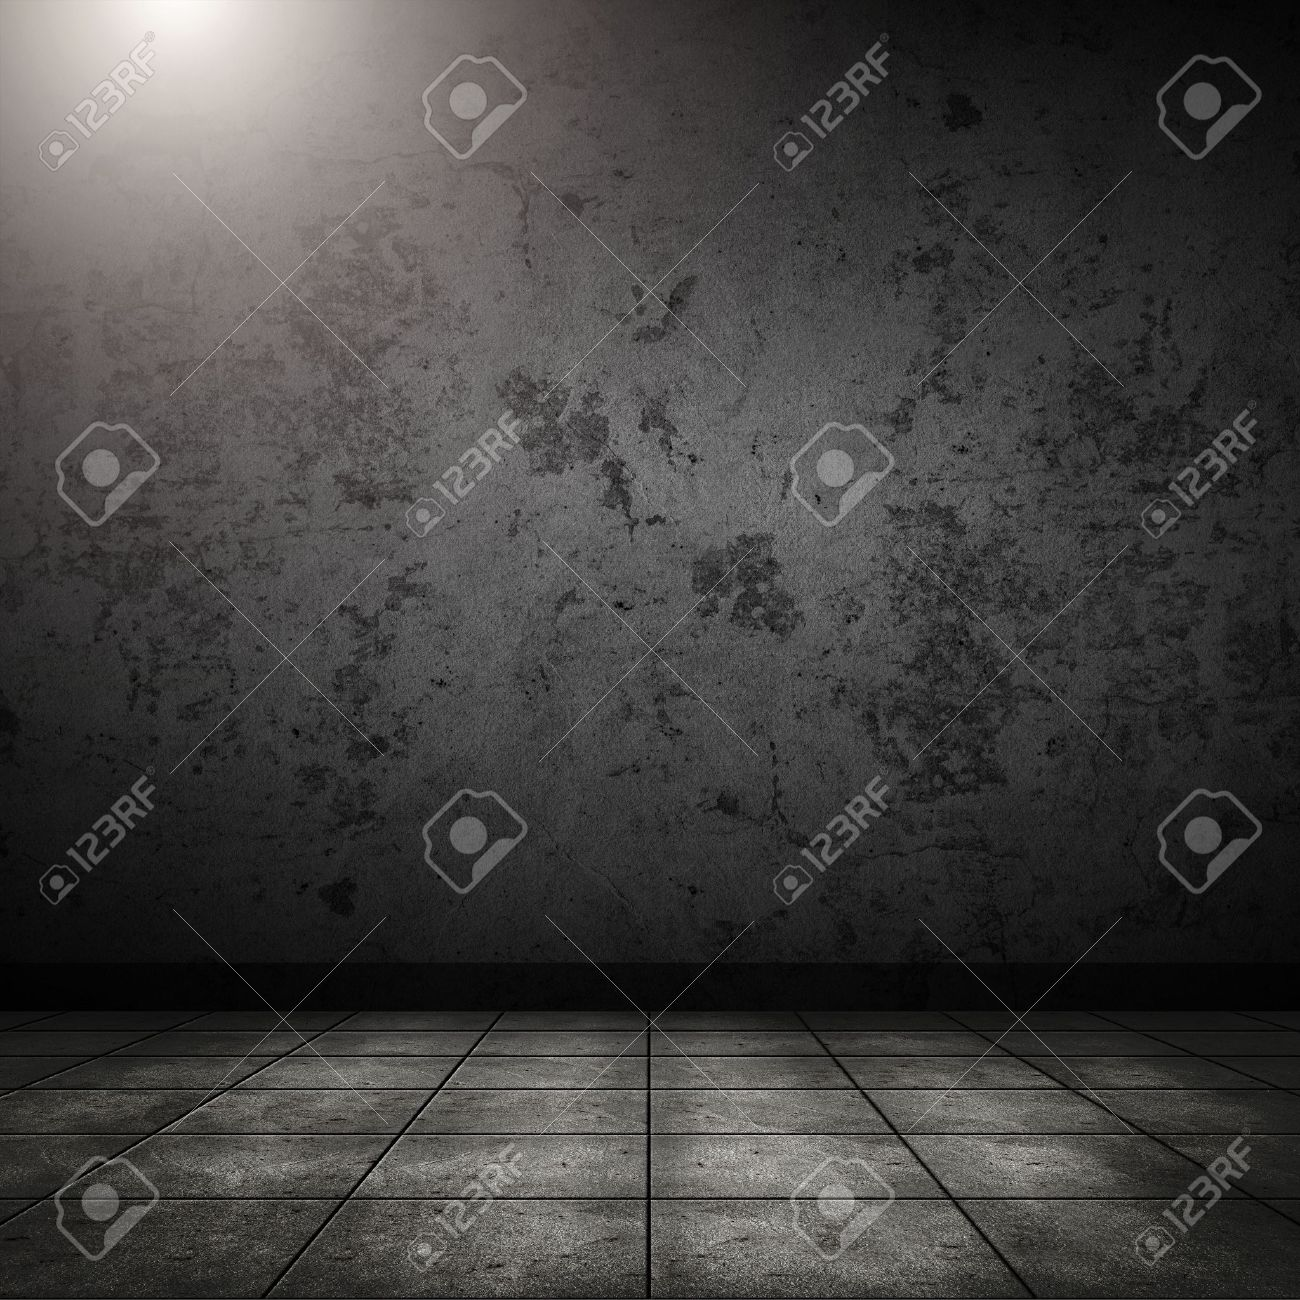 Dark room with tile floor and brick wall background stock photo dark room with tile floor and brick wall background stock photo 25953726 dailygadgetfo Choice Image